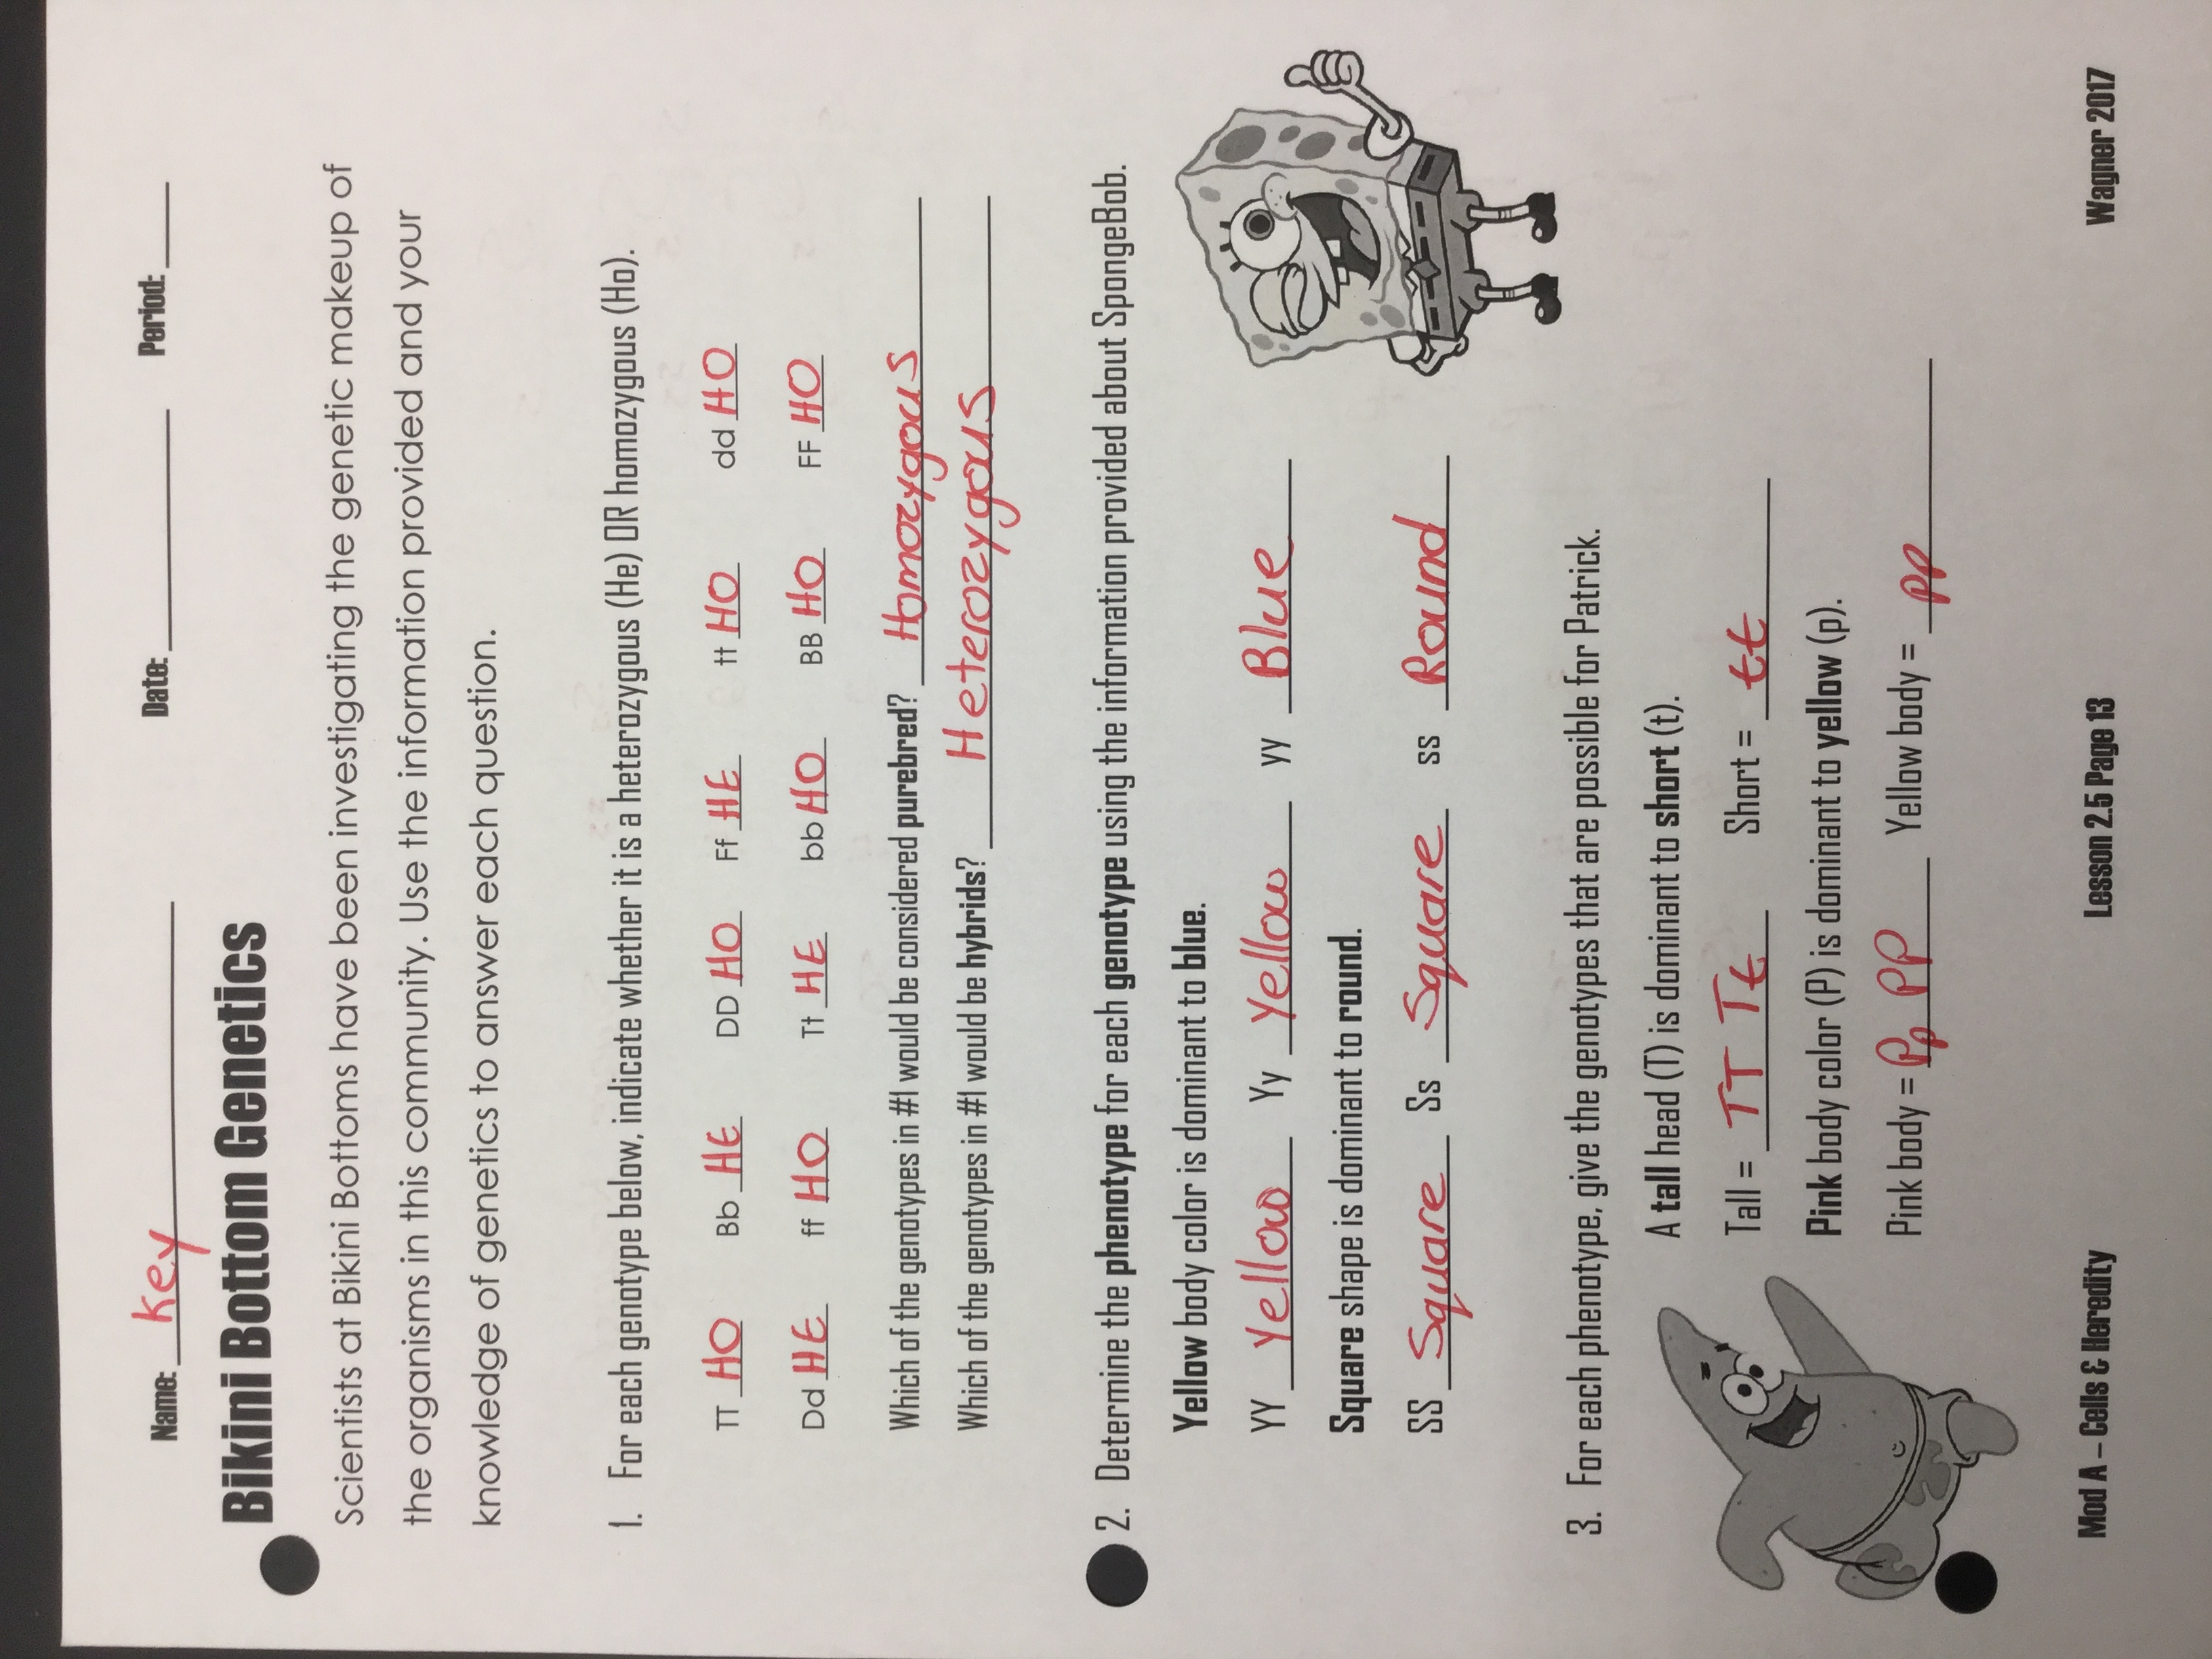 besides Bottom Ge ics 2 Worksheet for 6th   8th Grade   Lesson Pla additionally bottom ge ics answers   Template as well Bottom Ge ics Worksheet for 7th   12th Grade   Lesson Pla further Name Bottom Ge ics Worksheet  3 Dihybrid Crosses Use in addition pun t square worksheet 650 841   Pun t Square Worksheet Answers in addition Ge ics Worksheet Answers   Homedressage also  likewise Bottom Ge ics additionally Learning Worksheets Bottom Ge ics Worksheet Along With moreover Sponge Bob   Answers pdf   Bottom Ge ics 2 Name Use your further Bottom Ge ics Worksheet Or Free Printable Grade Science 7th also Bottom Ge ics Scientists at Bottoms have been likewise Bottom Ge ics In plete Dominance Answer Key together with Bottom Ge ics 2 Answers   YouTube also Bottom Ge ics Name. on bottom genetics worksheet answers